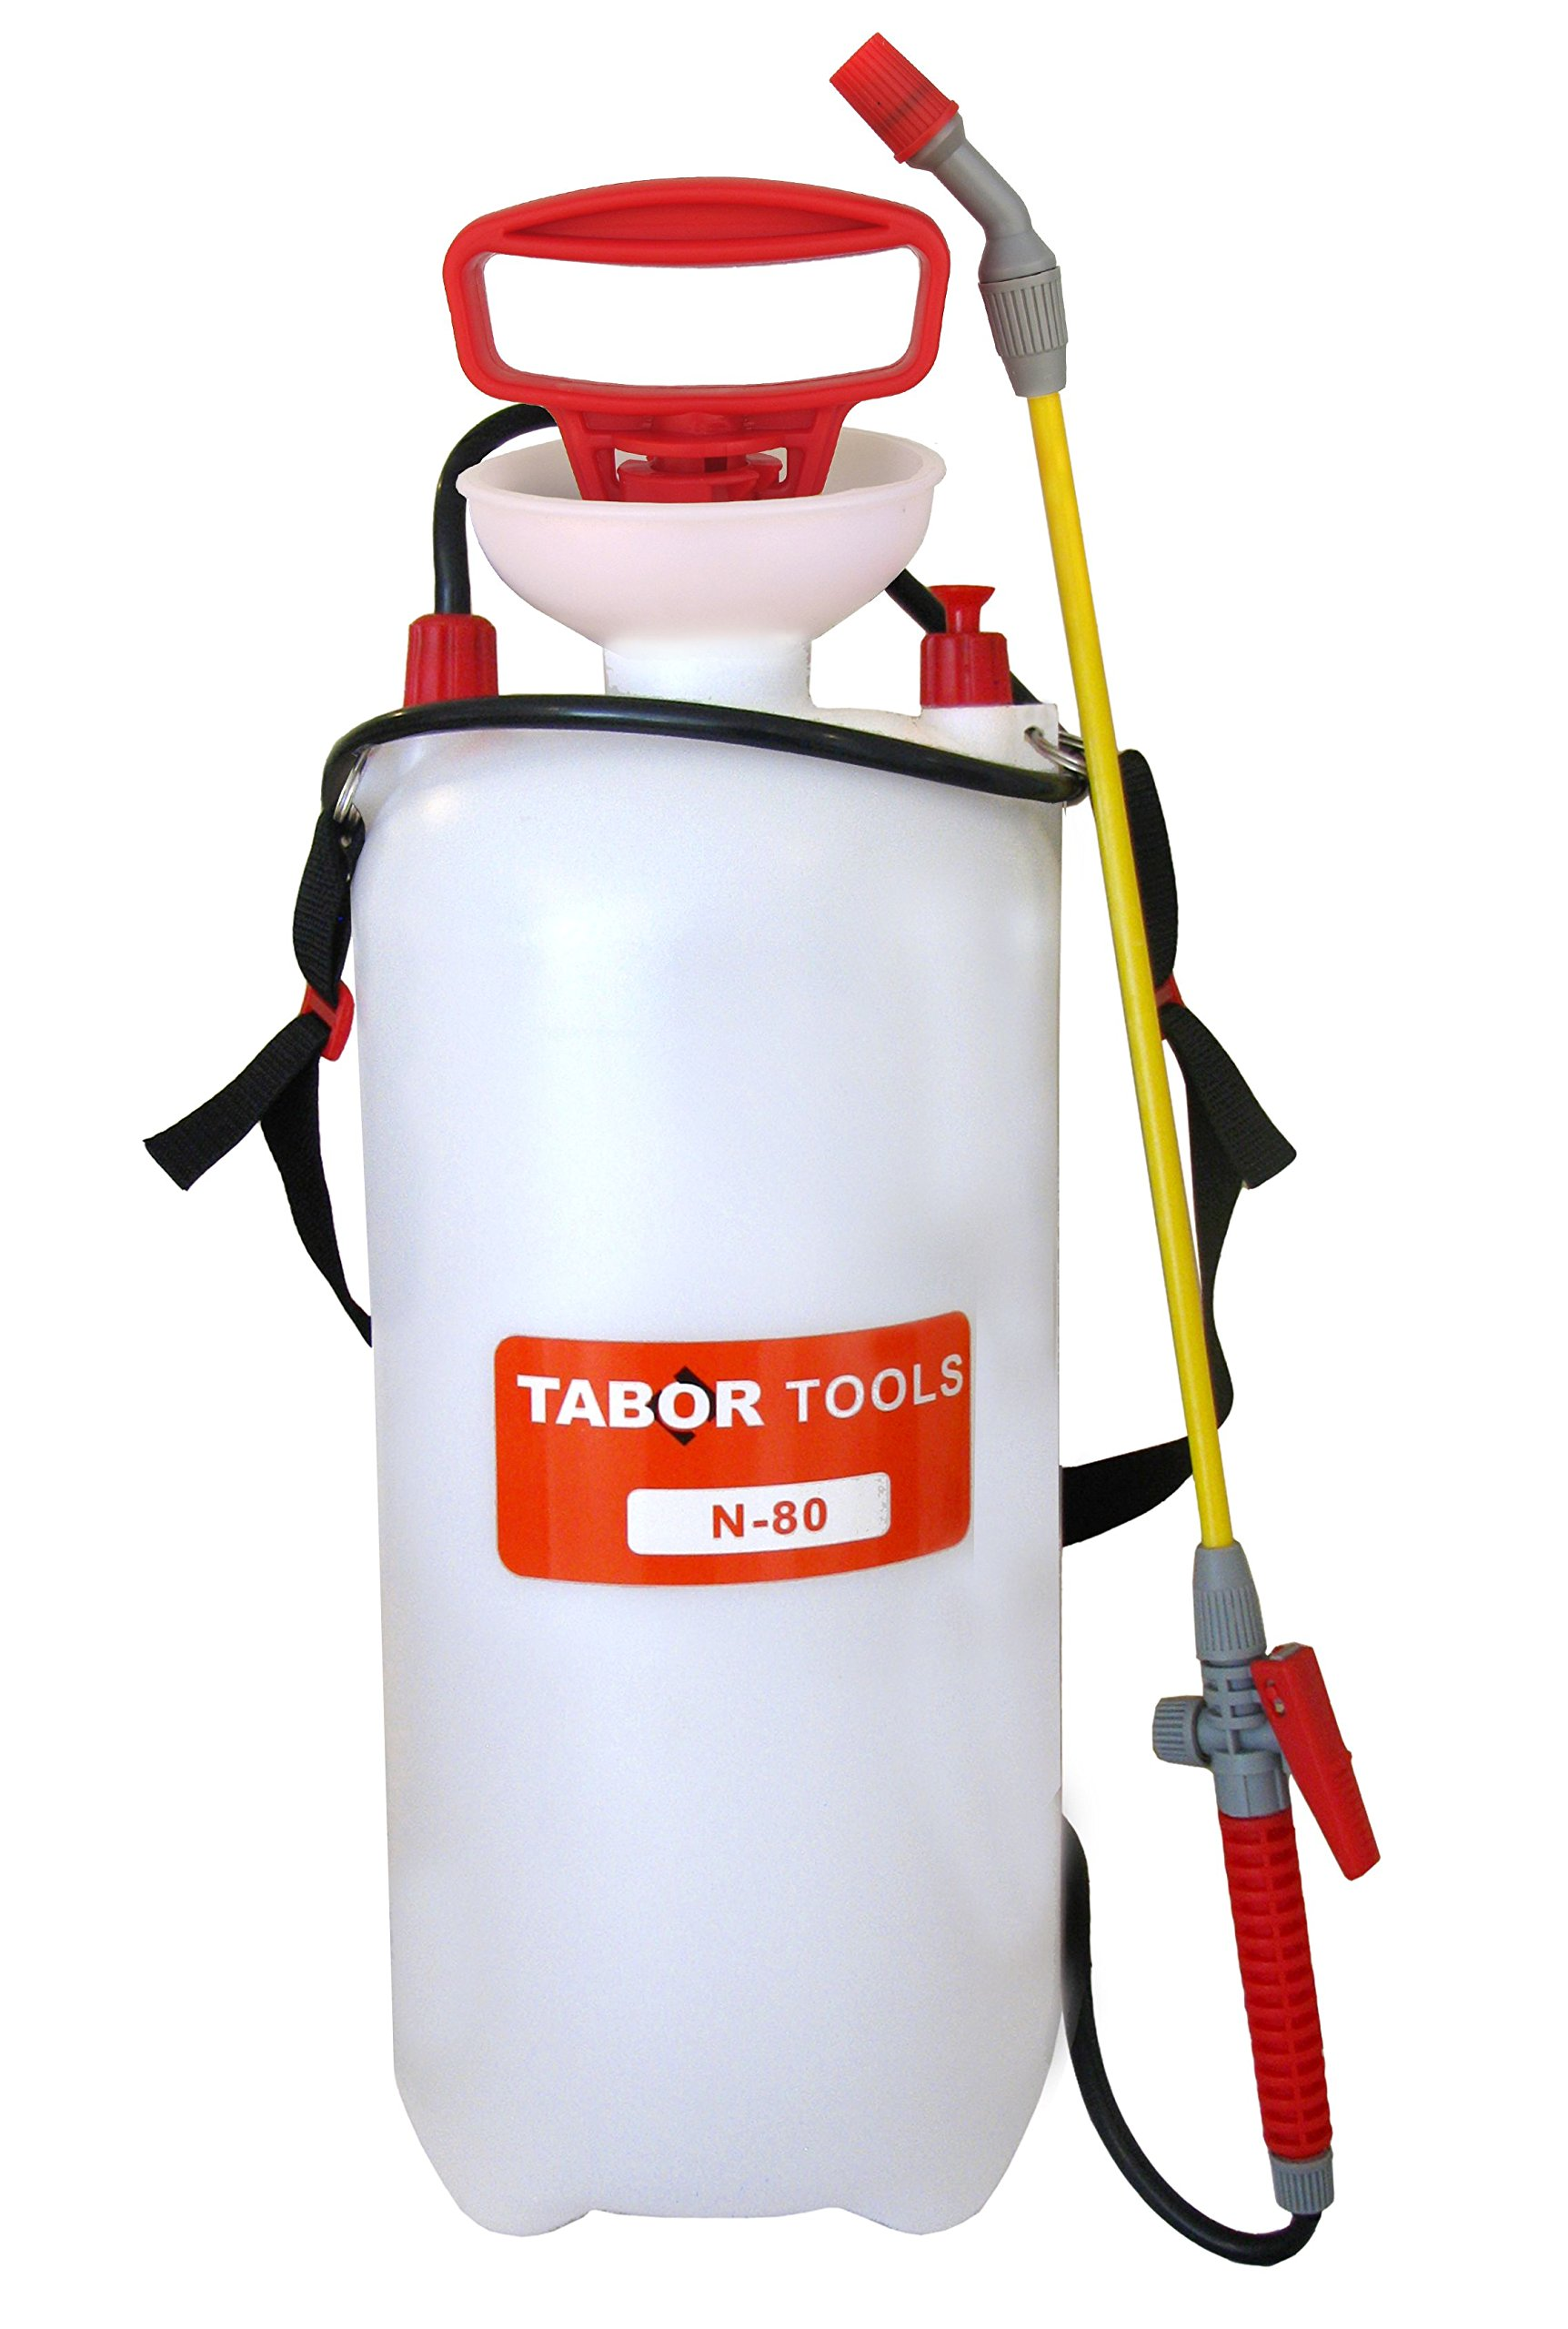 TABOR TOOLS Lawn and Garden Pump Pressure Sprayer for Herbicides, Fertilizers, Mild Cleaning Solutions and Bleach, Includes Shoulder Strap. N-80. (2.0 Gallon) by TABOR TOOLS